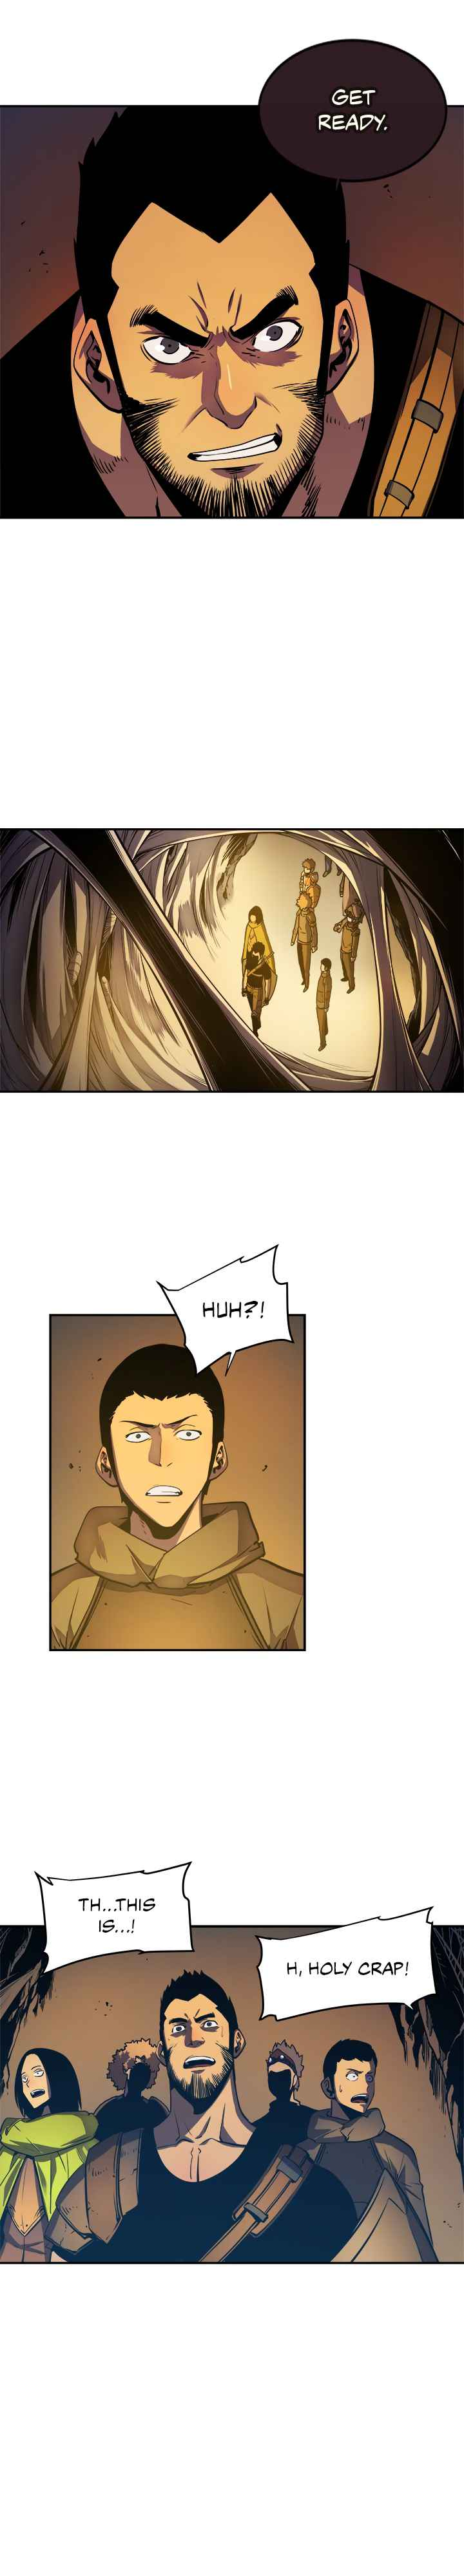 Solo Leveling Chapter 20 Page 10